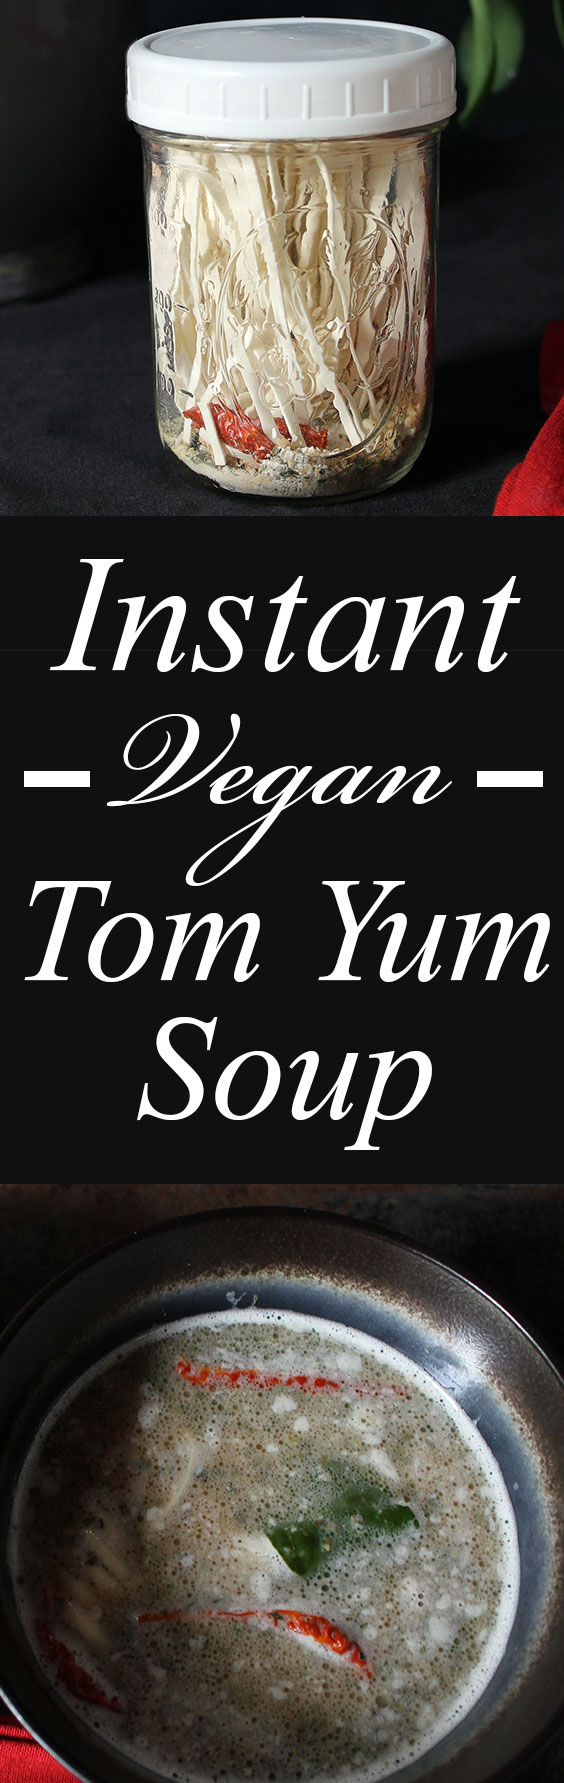 FAST AND EASY! Vegan Tom Yum Soup! Just add hot water! #vegan #soup #plantbased #tomyum #backpacking #recipe #food #easyrecipe